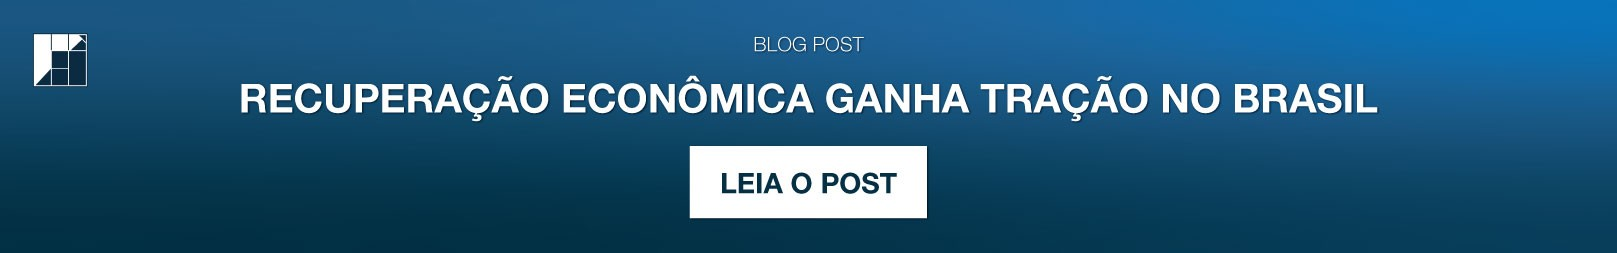 CTA para Post no Blog